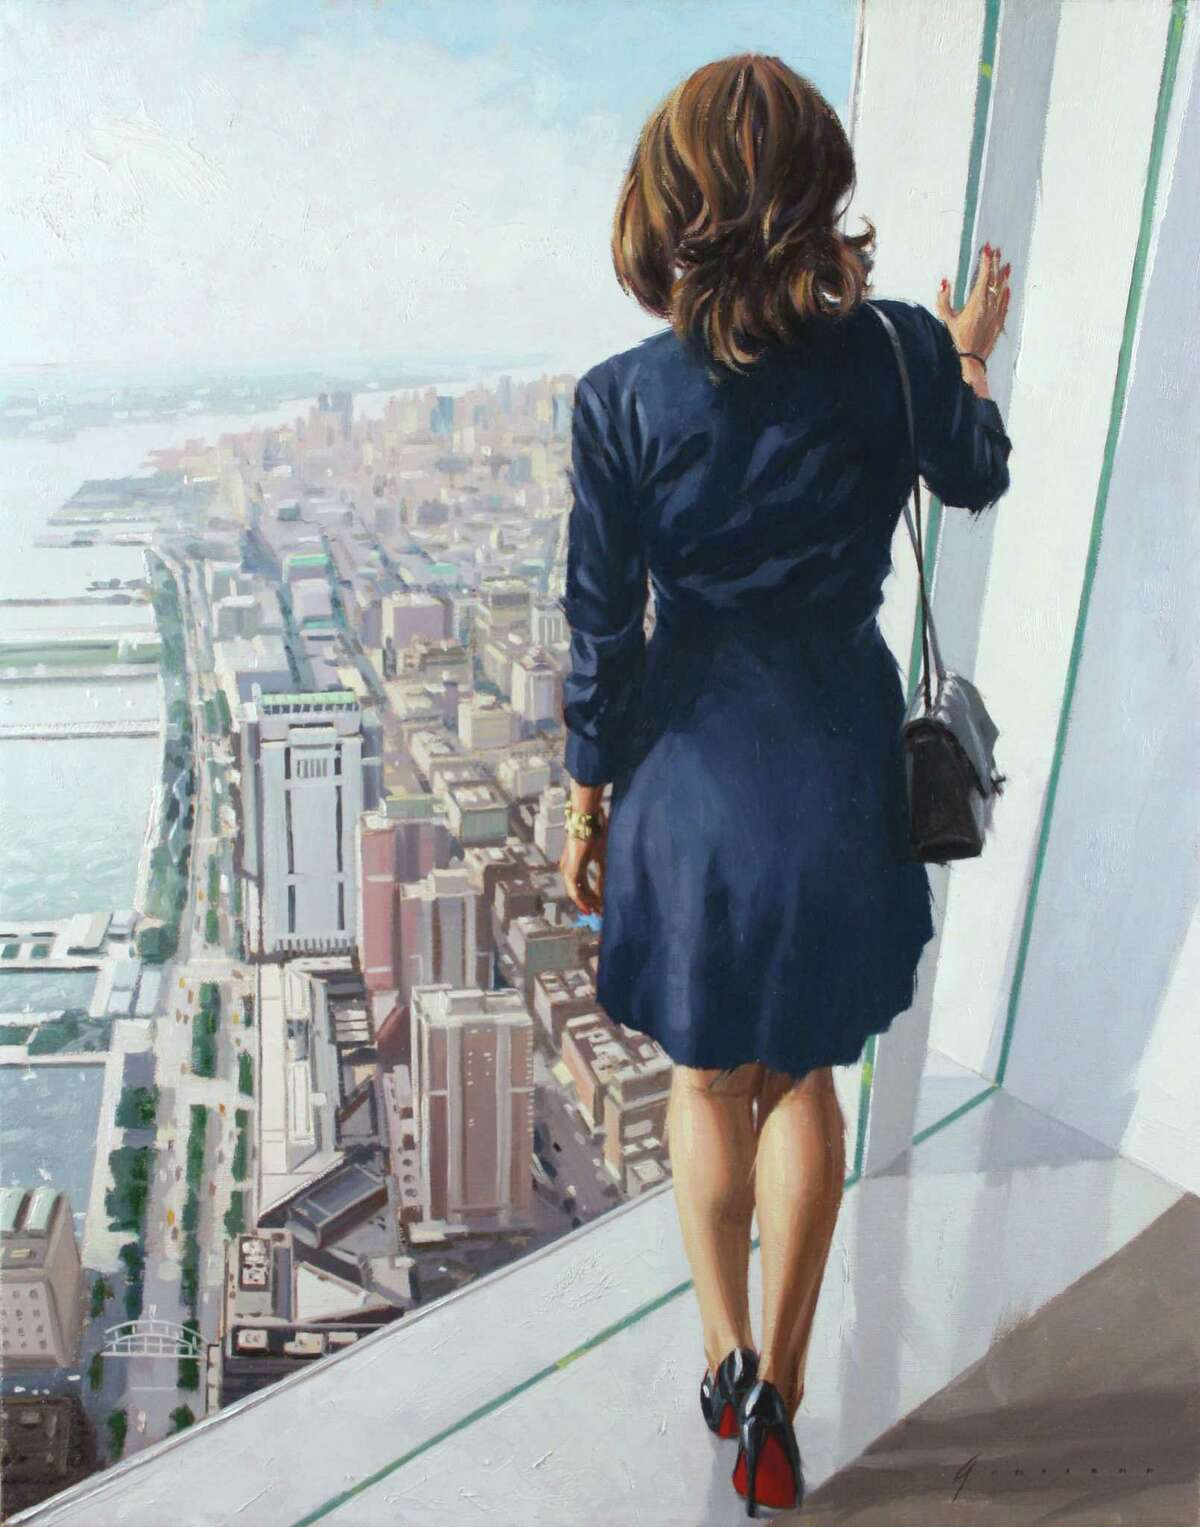 Paintings by Vincent Giarrano are on display at Susan Powell Fine Art in Madison.